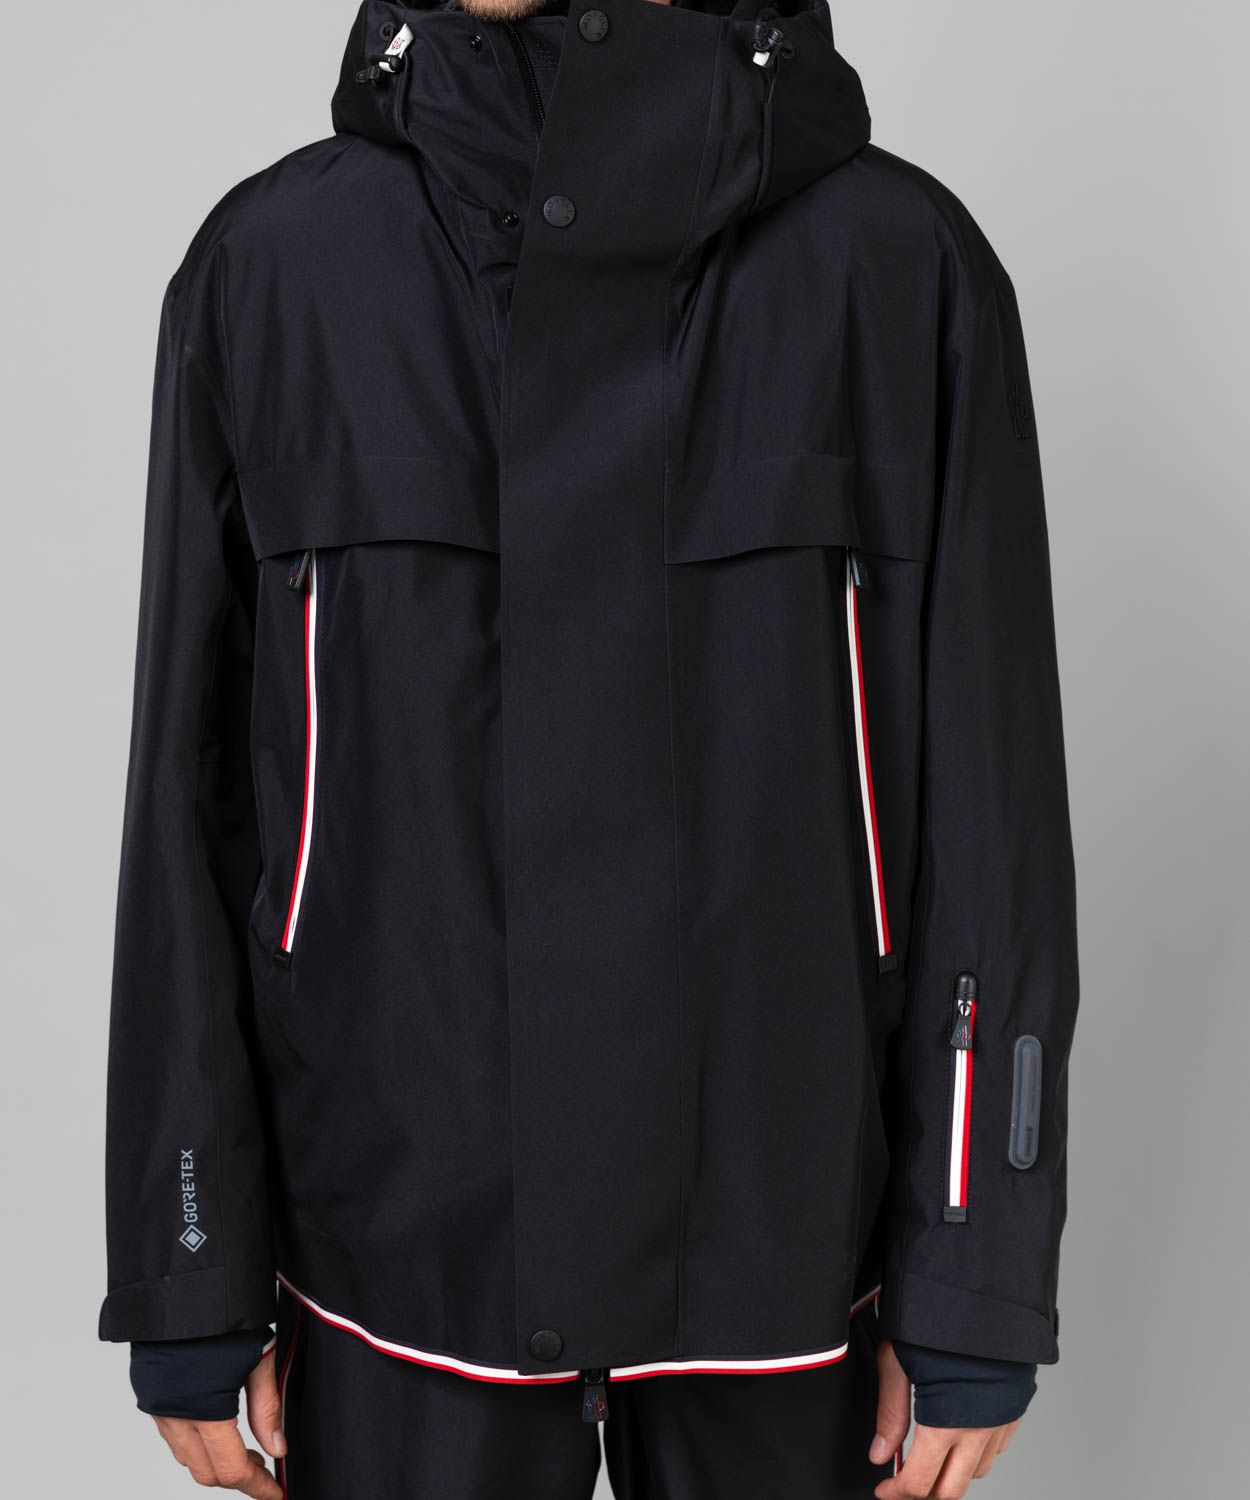 Men's Miller Gore-Tex Ski Jacket